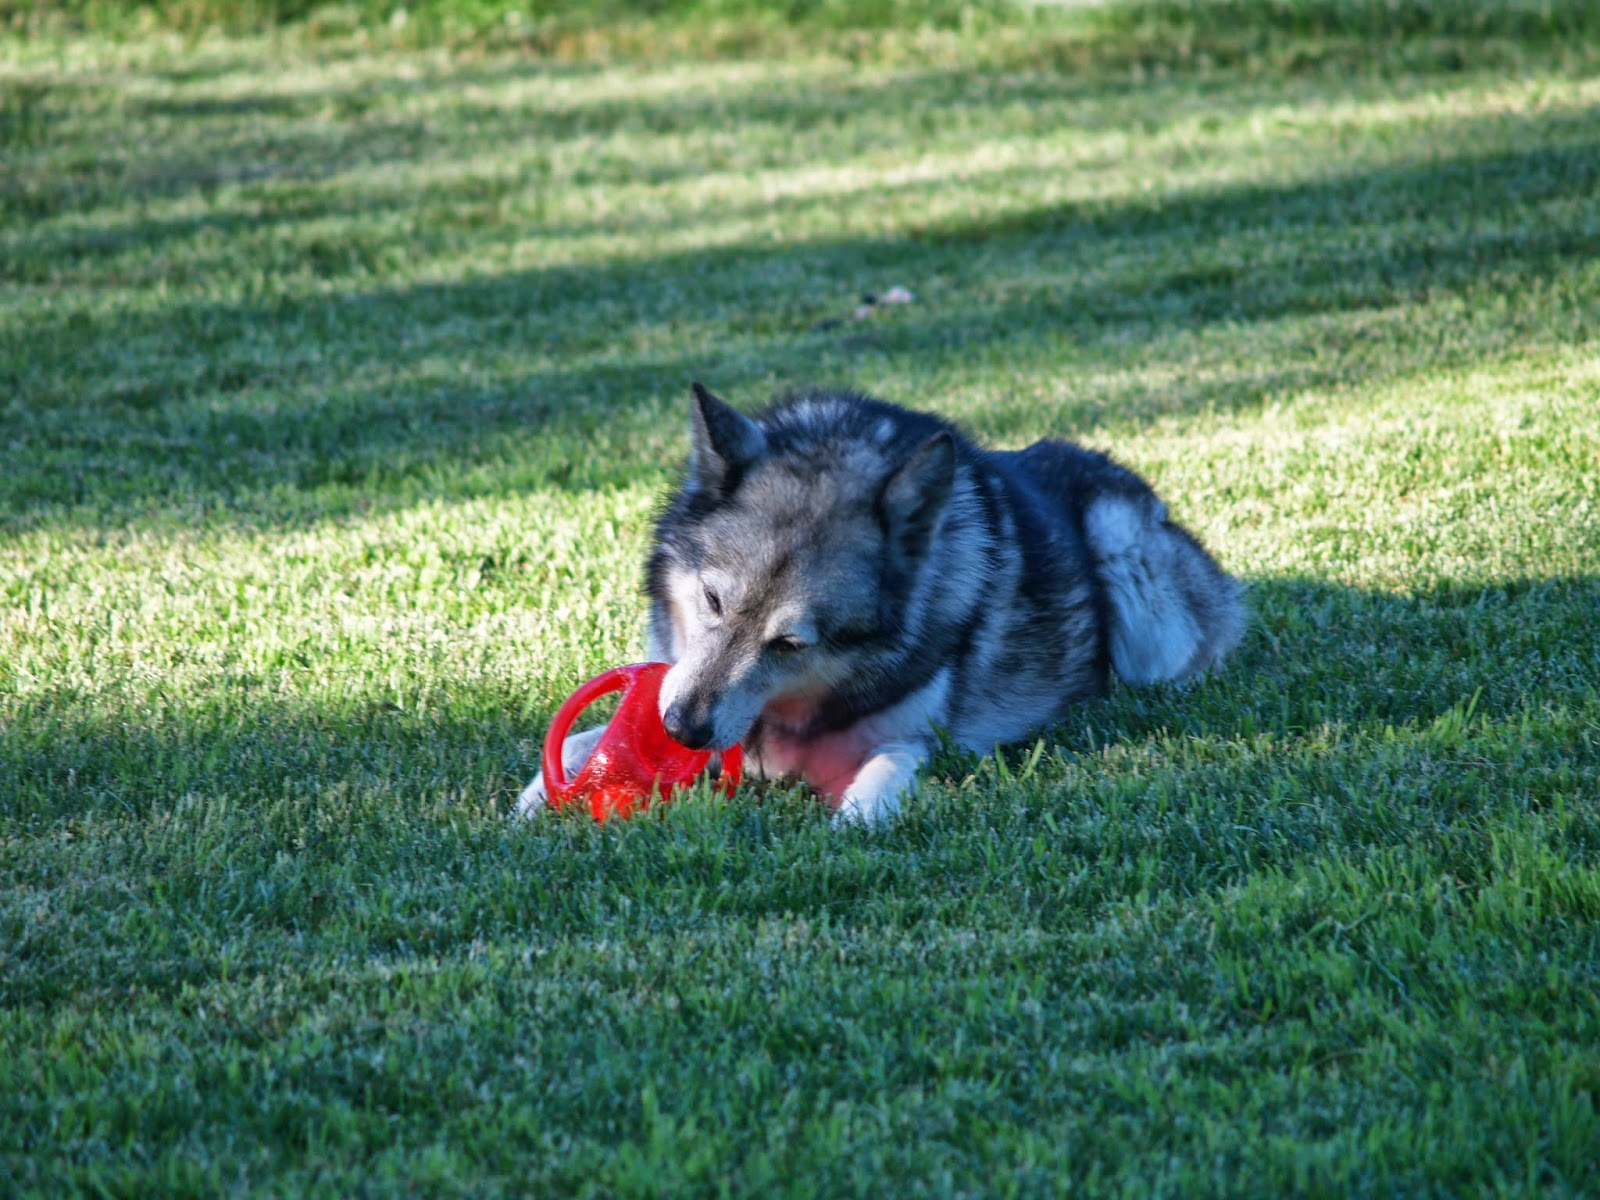 My Rotten Dogs I Love Interactive Dog Toys KONG Jumbler Review